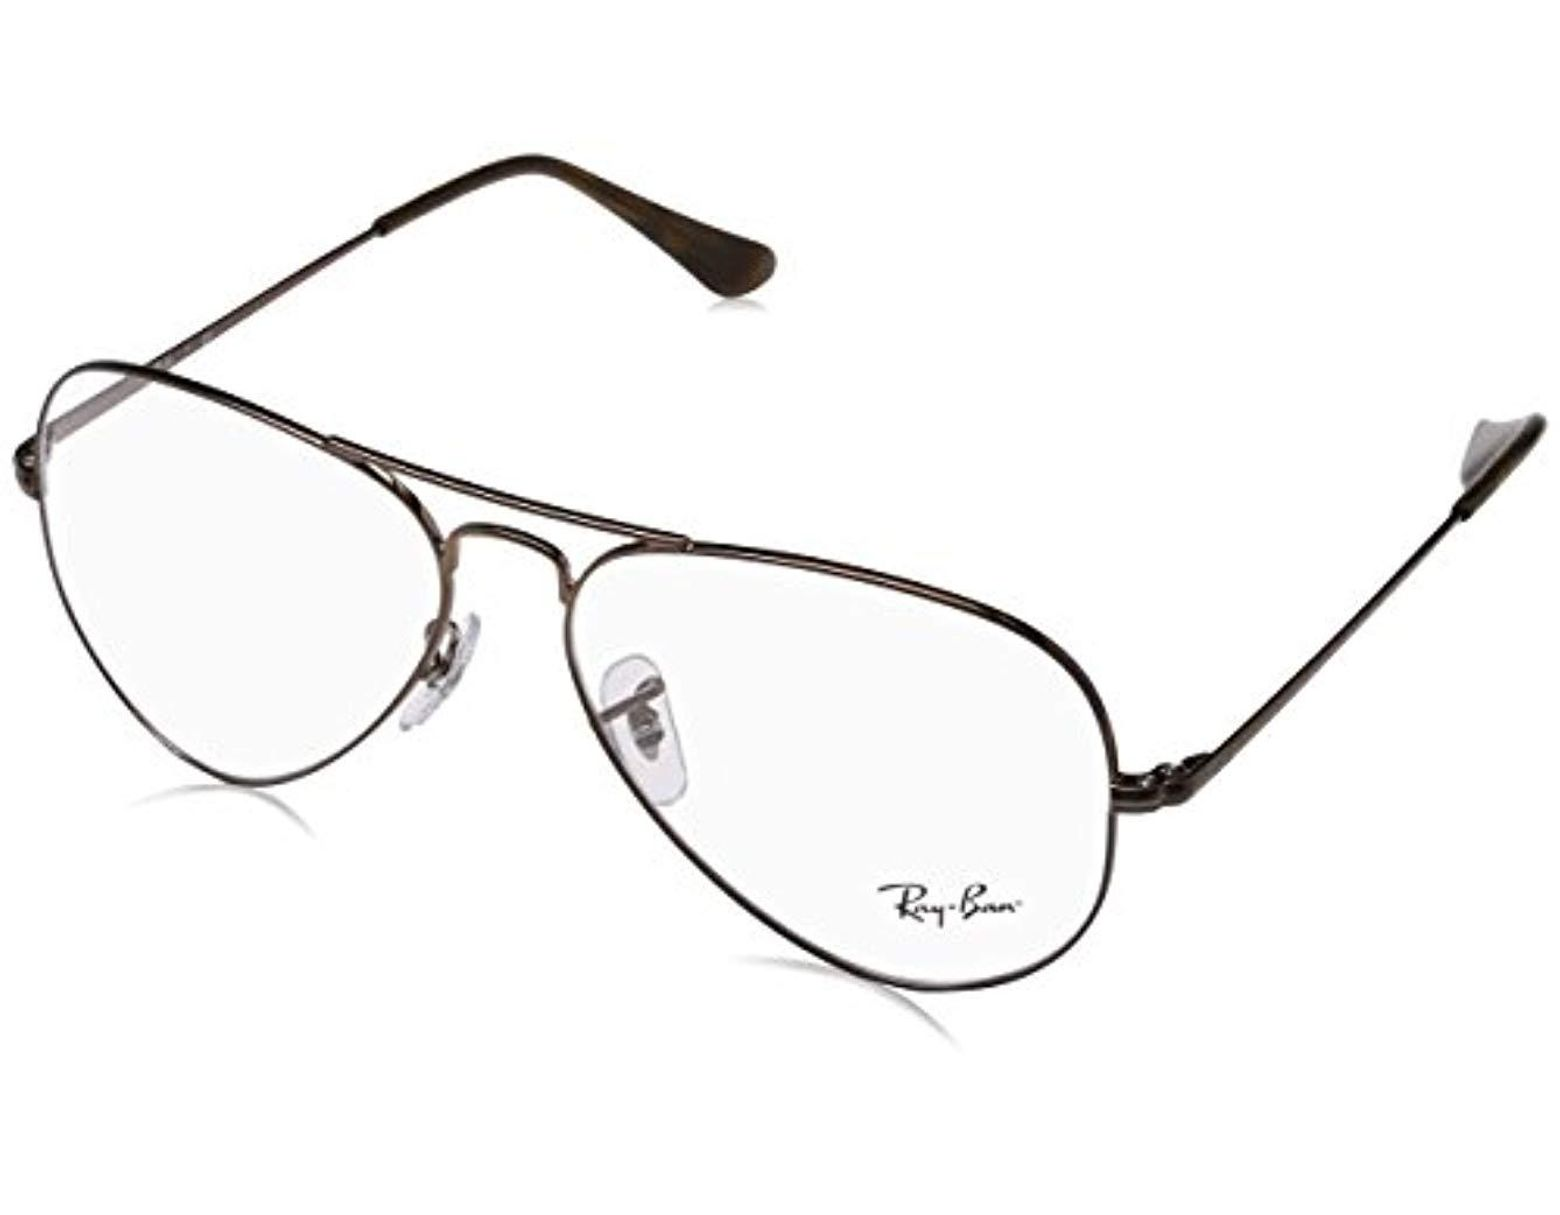 e08395e32718 Ray-Ban 0rx 6489 2531 58 Optical Frames, (light Brown) in Brown - Lyst